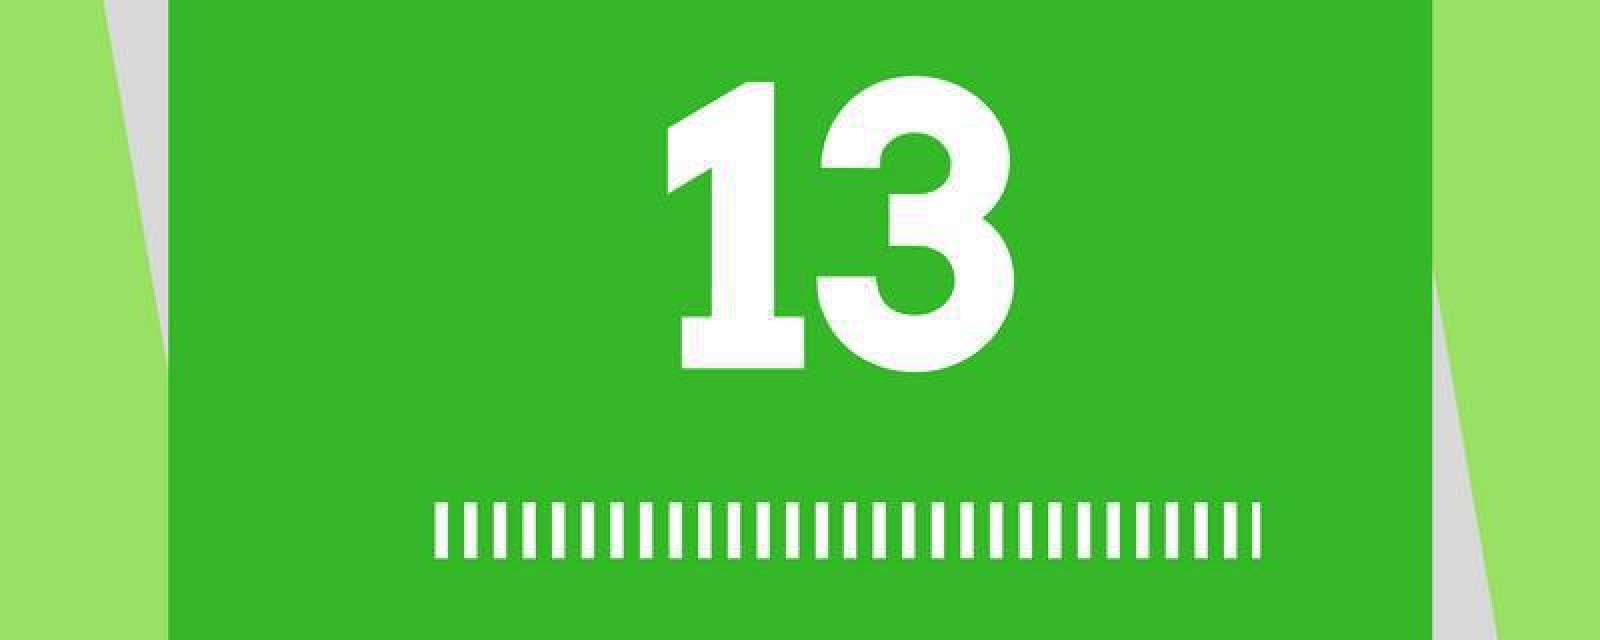 The Meaning of 13